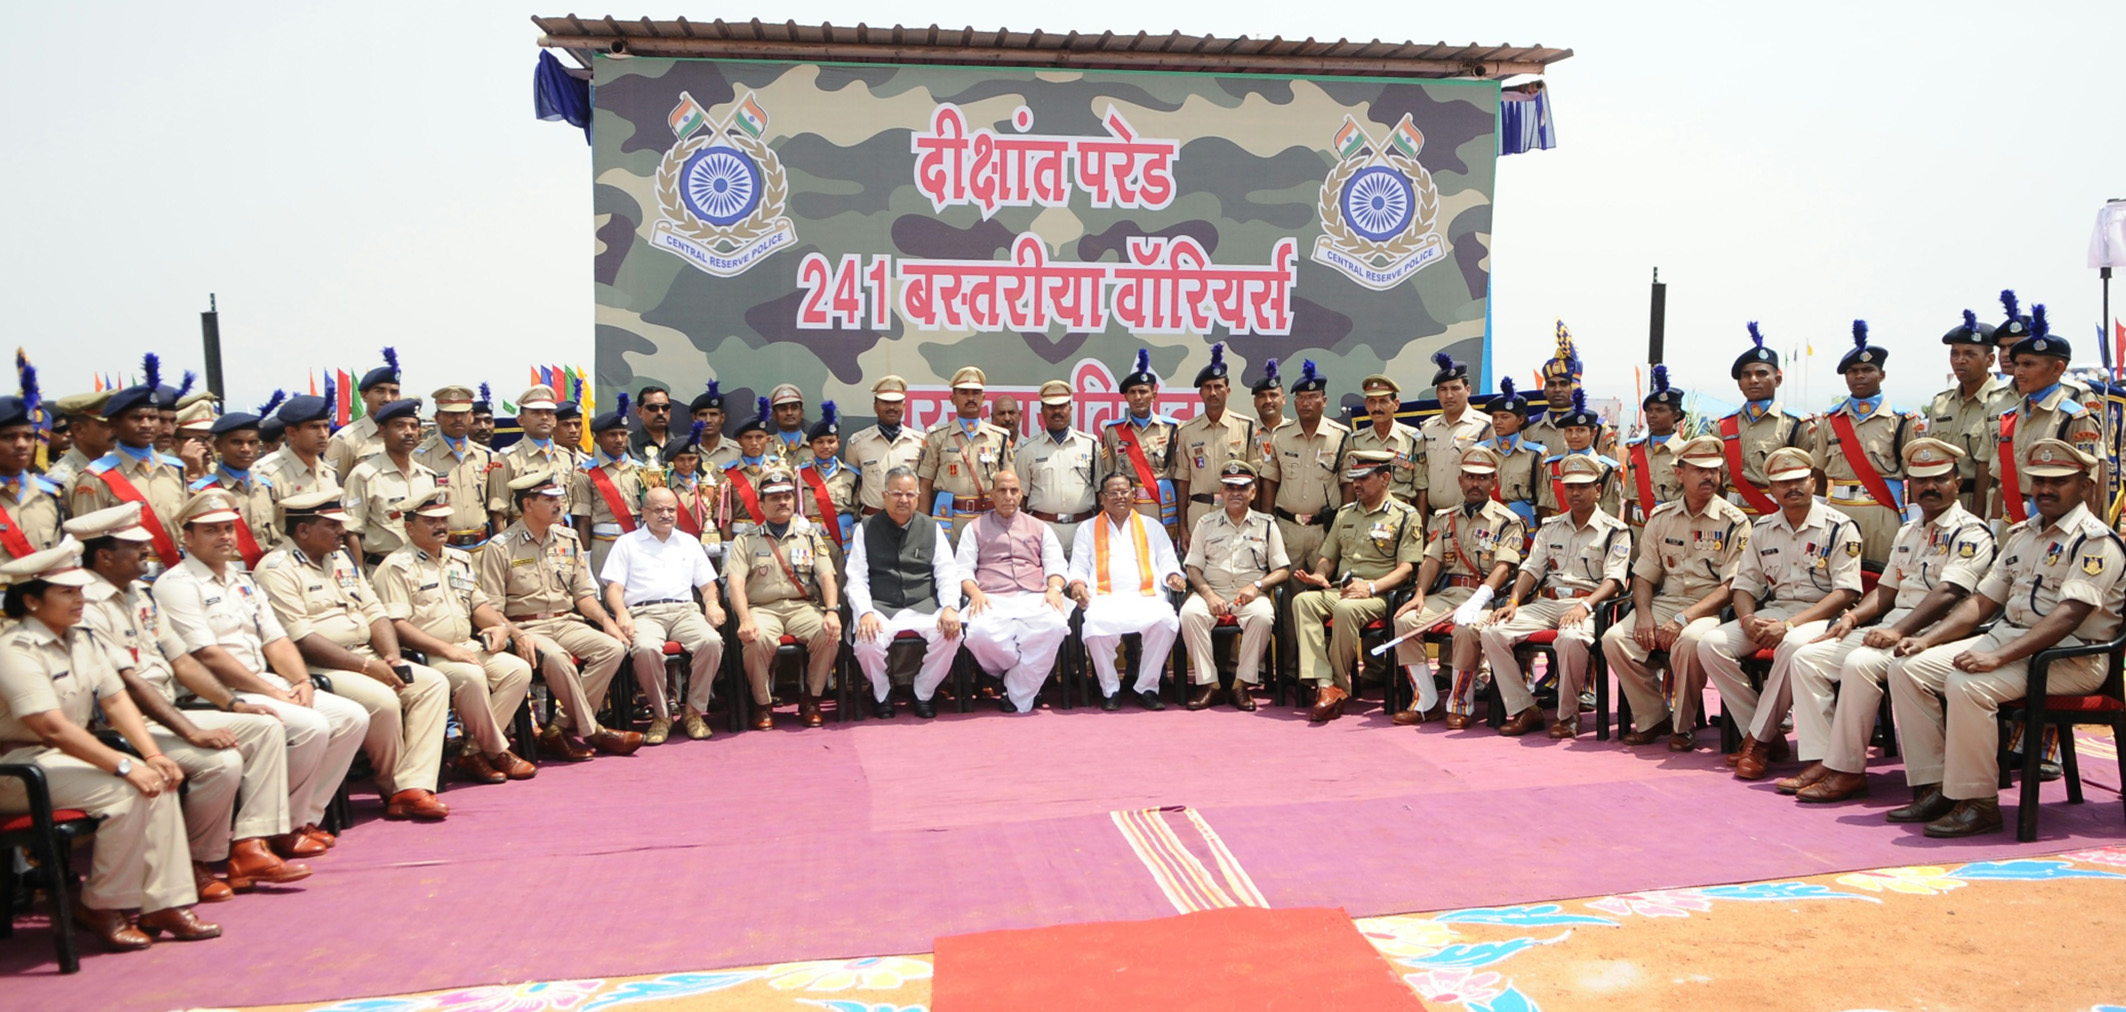 The Union Home Minister, Shri Rajnath Singh in a group photograph, during the Passing Out Parade of the 'Bastariya Battalion' of CRPF, in Ambikapur, in Chhattisgarh on May 21, 2018.